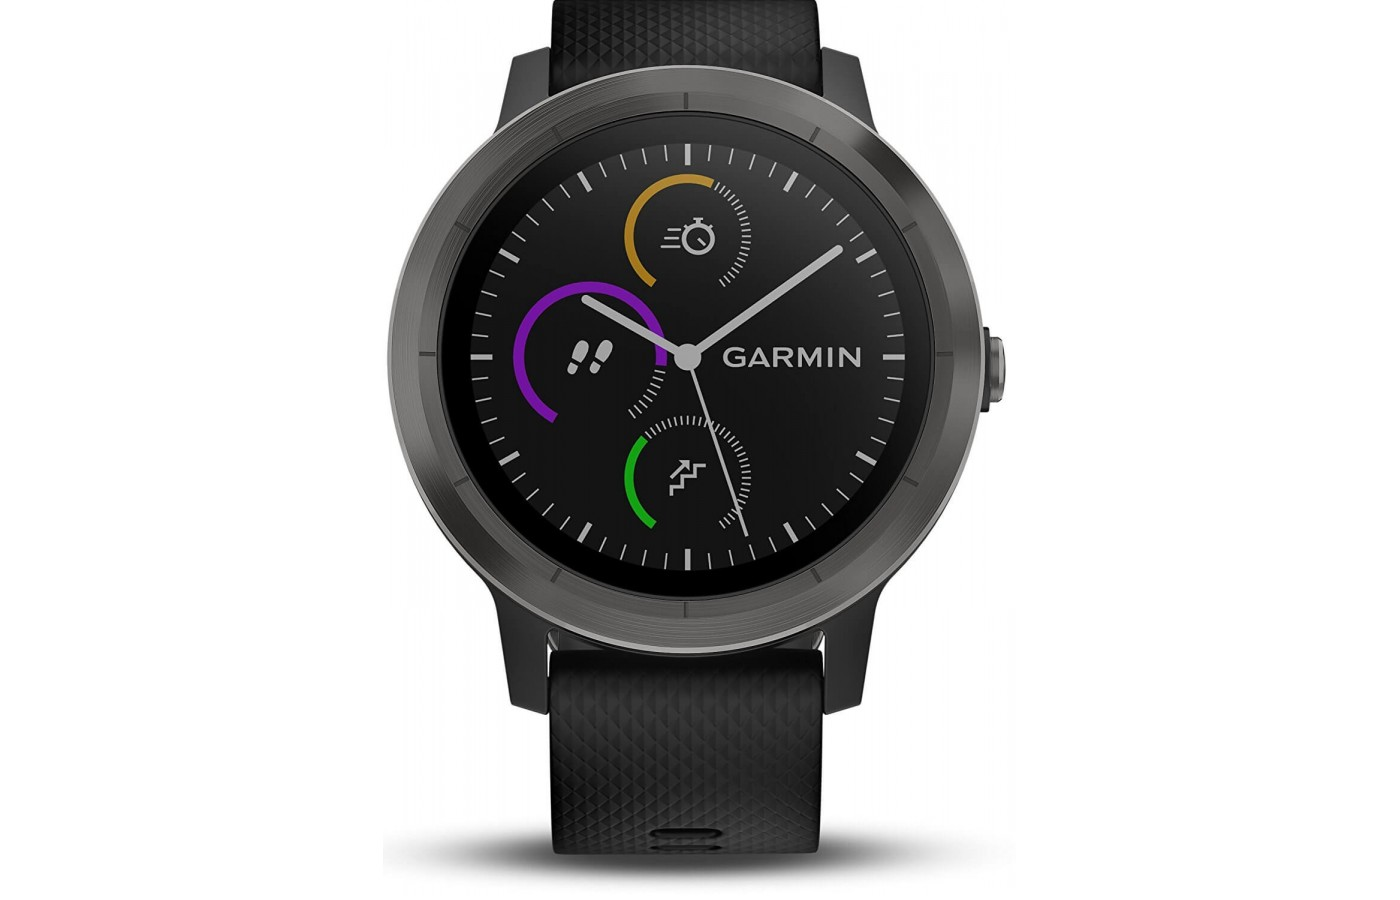 The Garmin Vivoactive 3 is TrueUP compatible